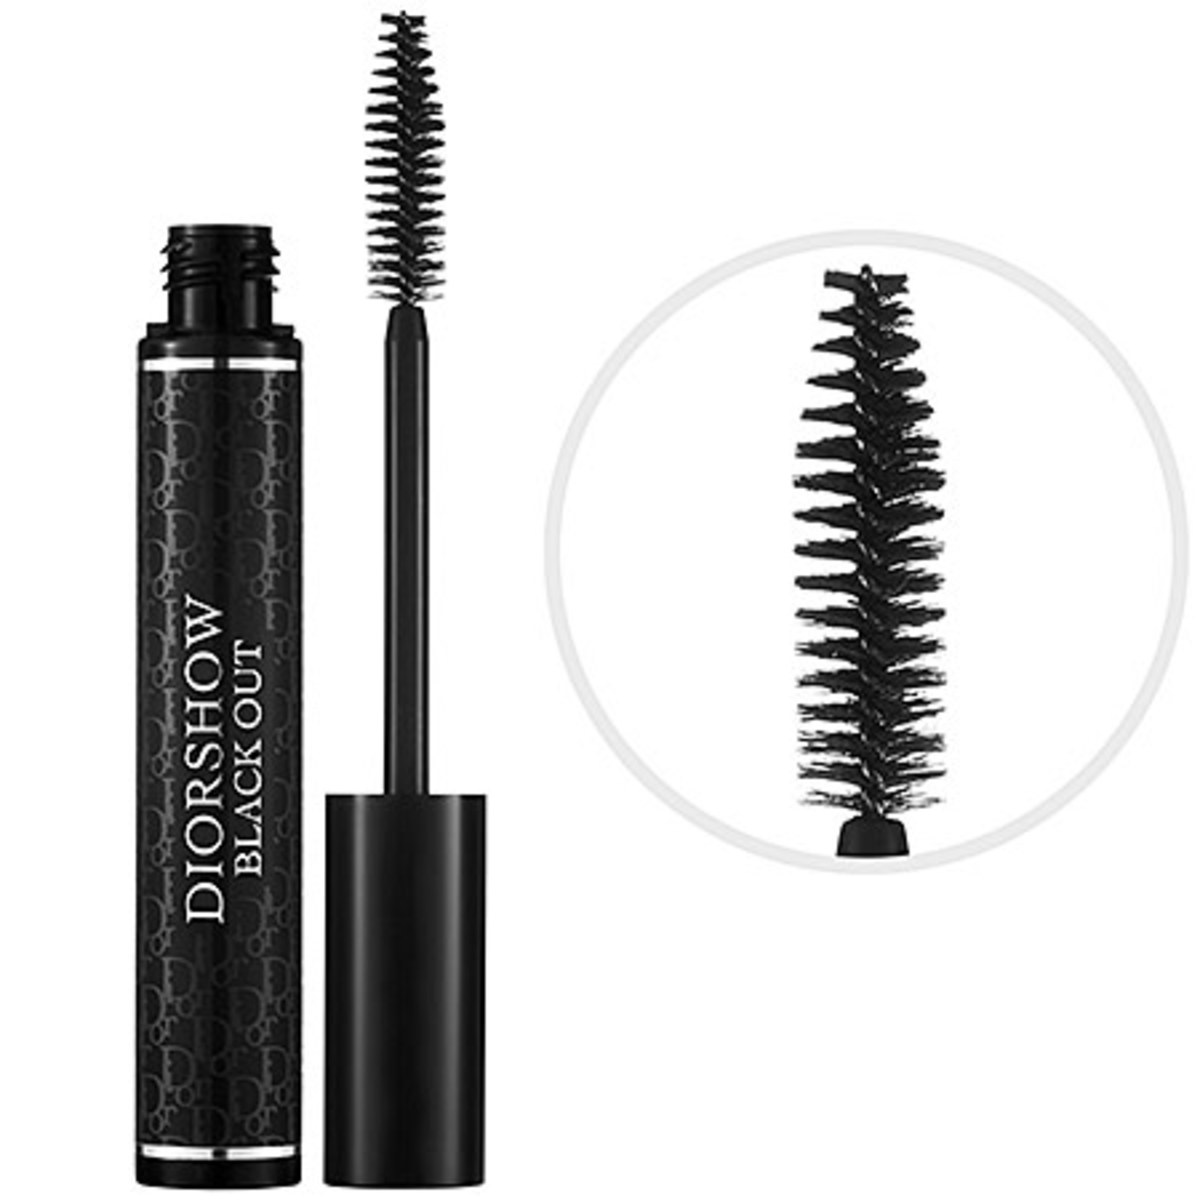 Dior Diorshow Black Out Mascara